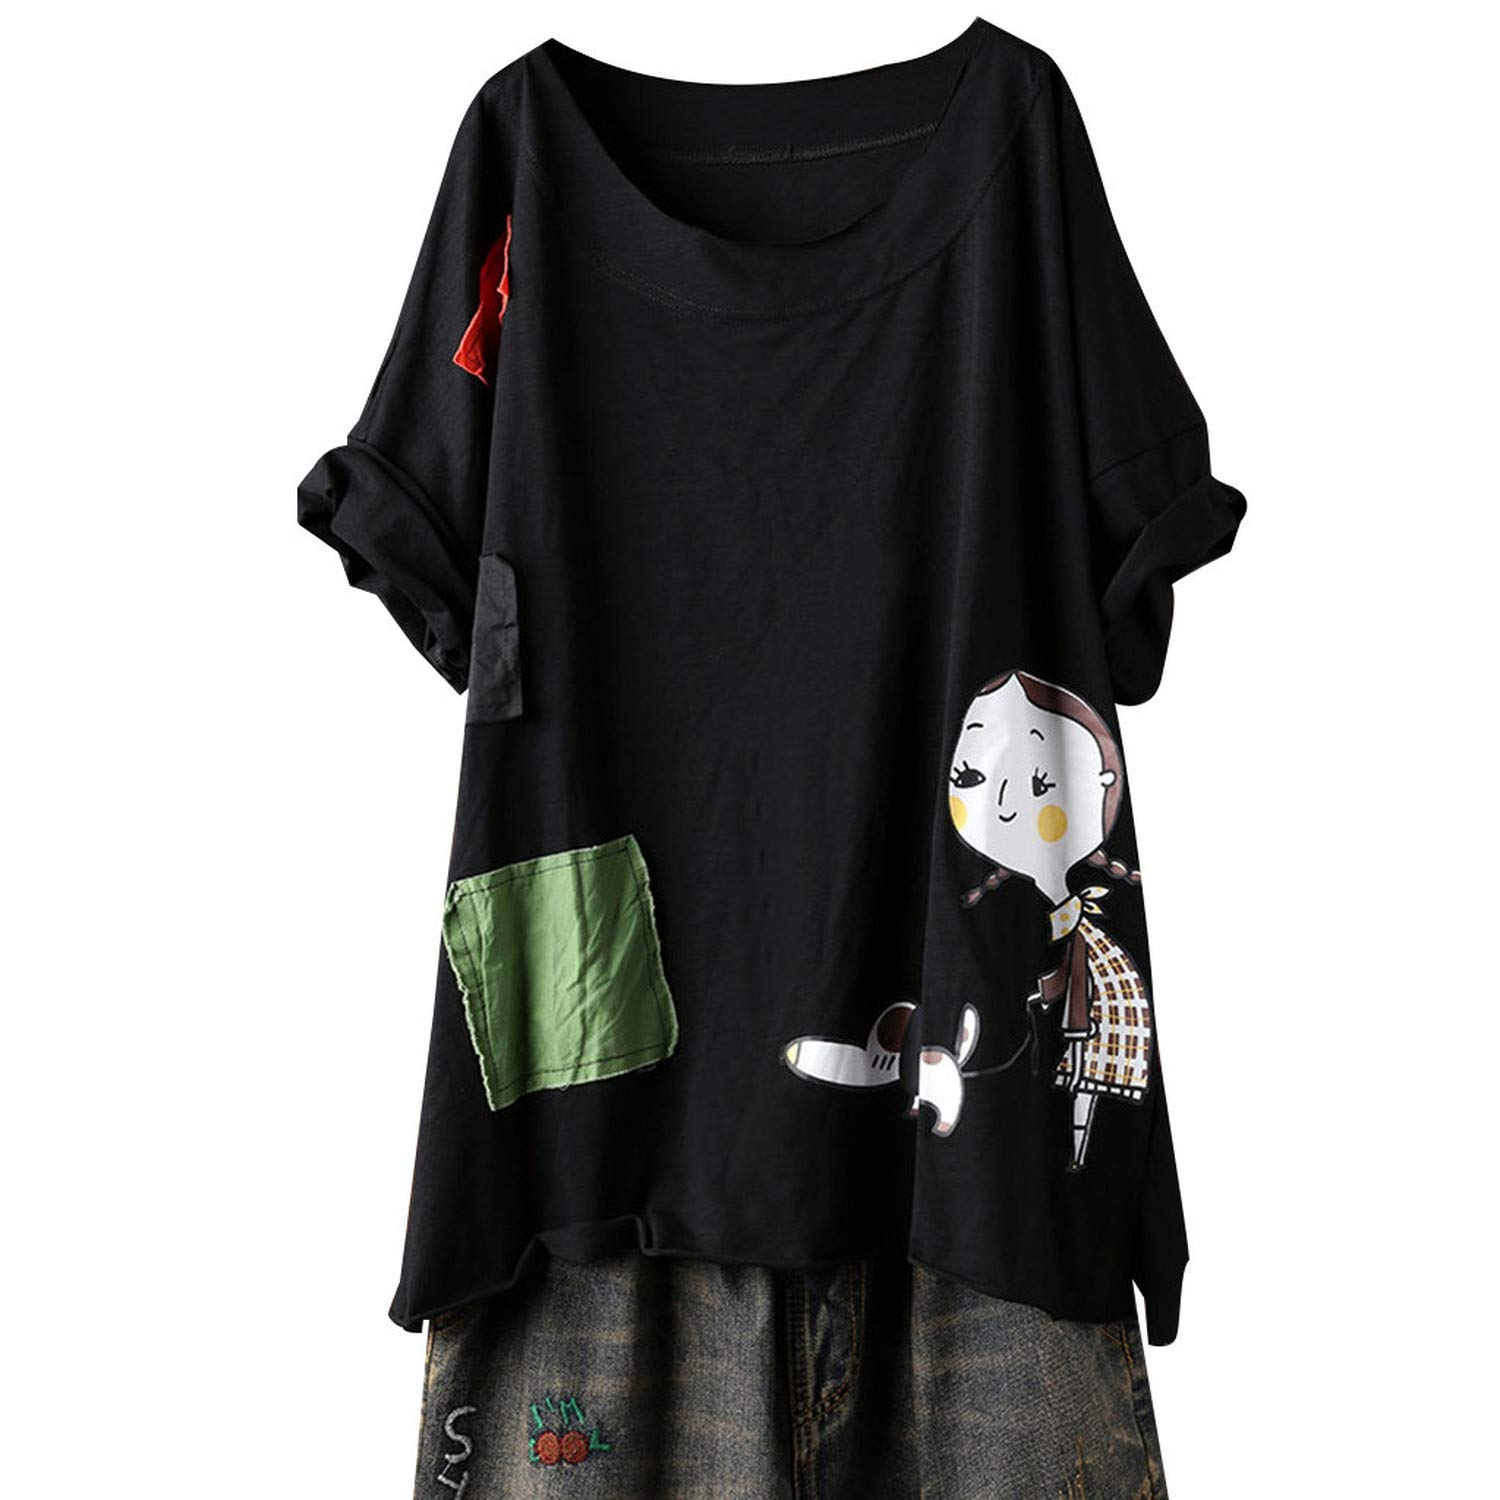 Duiyt Women Plus Size Harajuku Kawaii Print Short Sleeve Solid Color Splice O Neck Tops Oversized Top Gold L United States